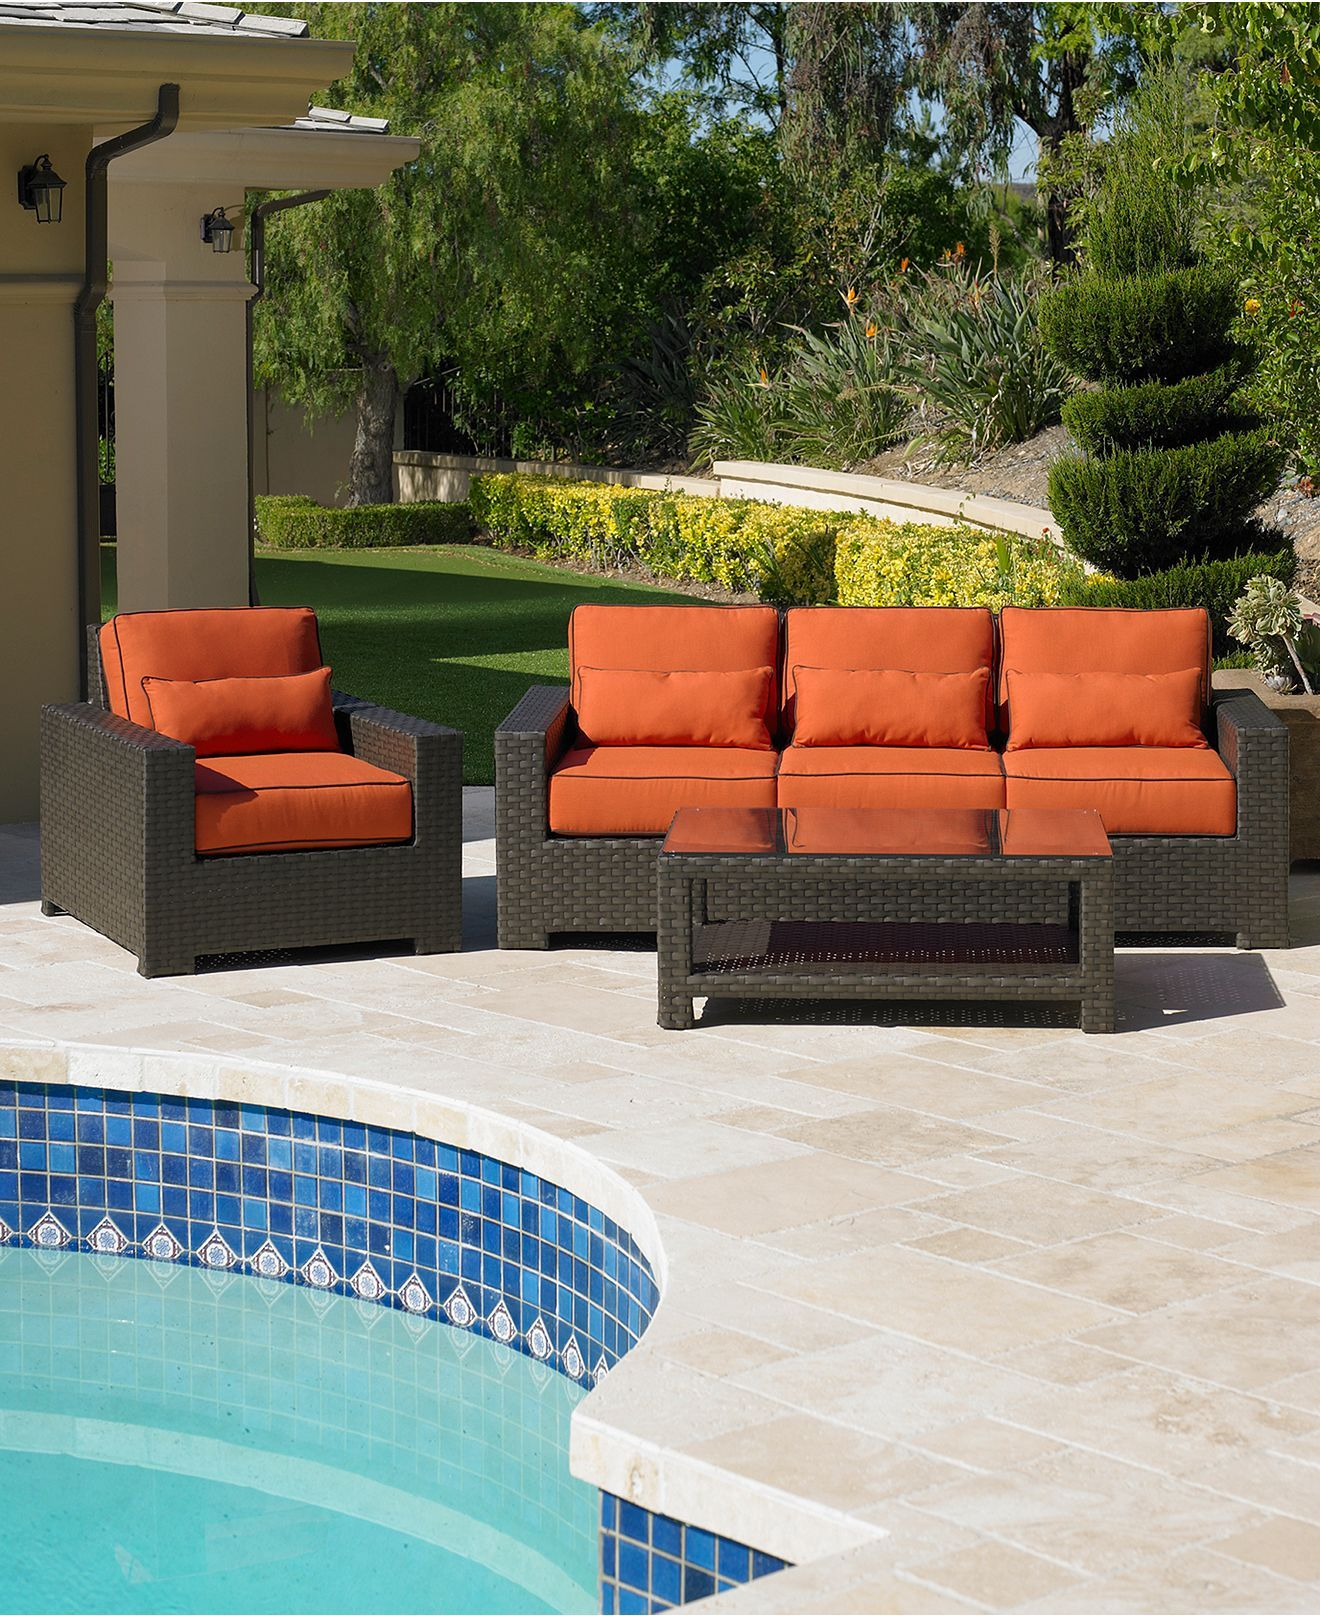 San Lucia Outdoor Patio Furniture Seating Sets & Pieces need to